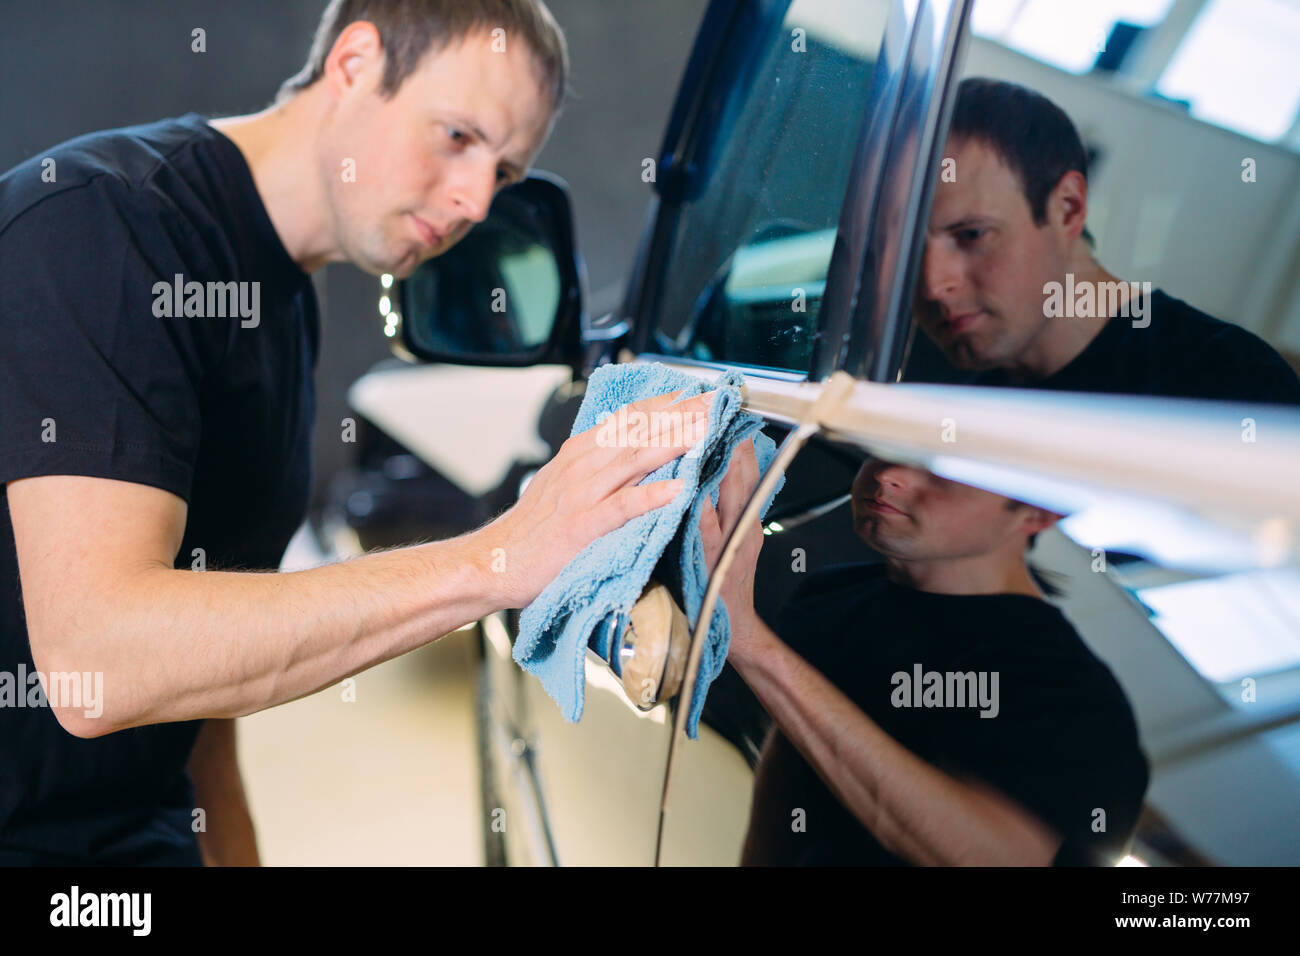 The man is wiping with a cloth body of a brilliant car. Stock Photo